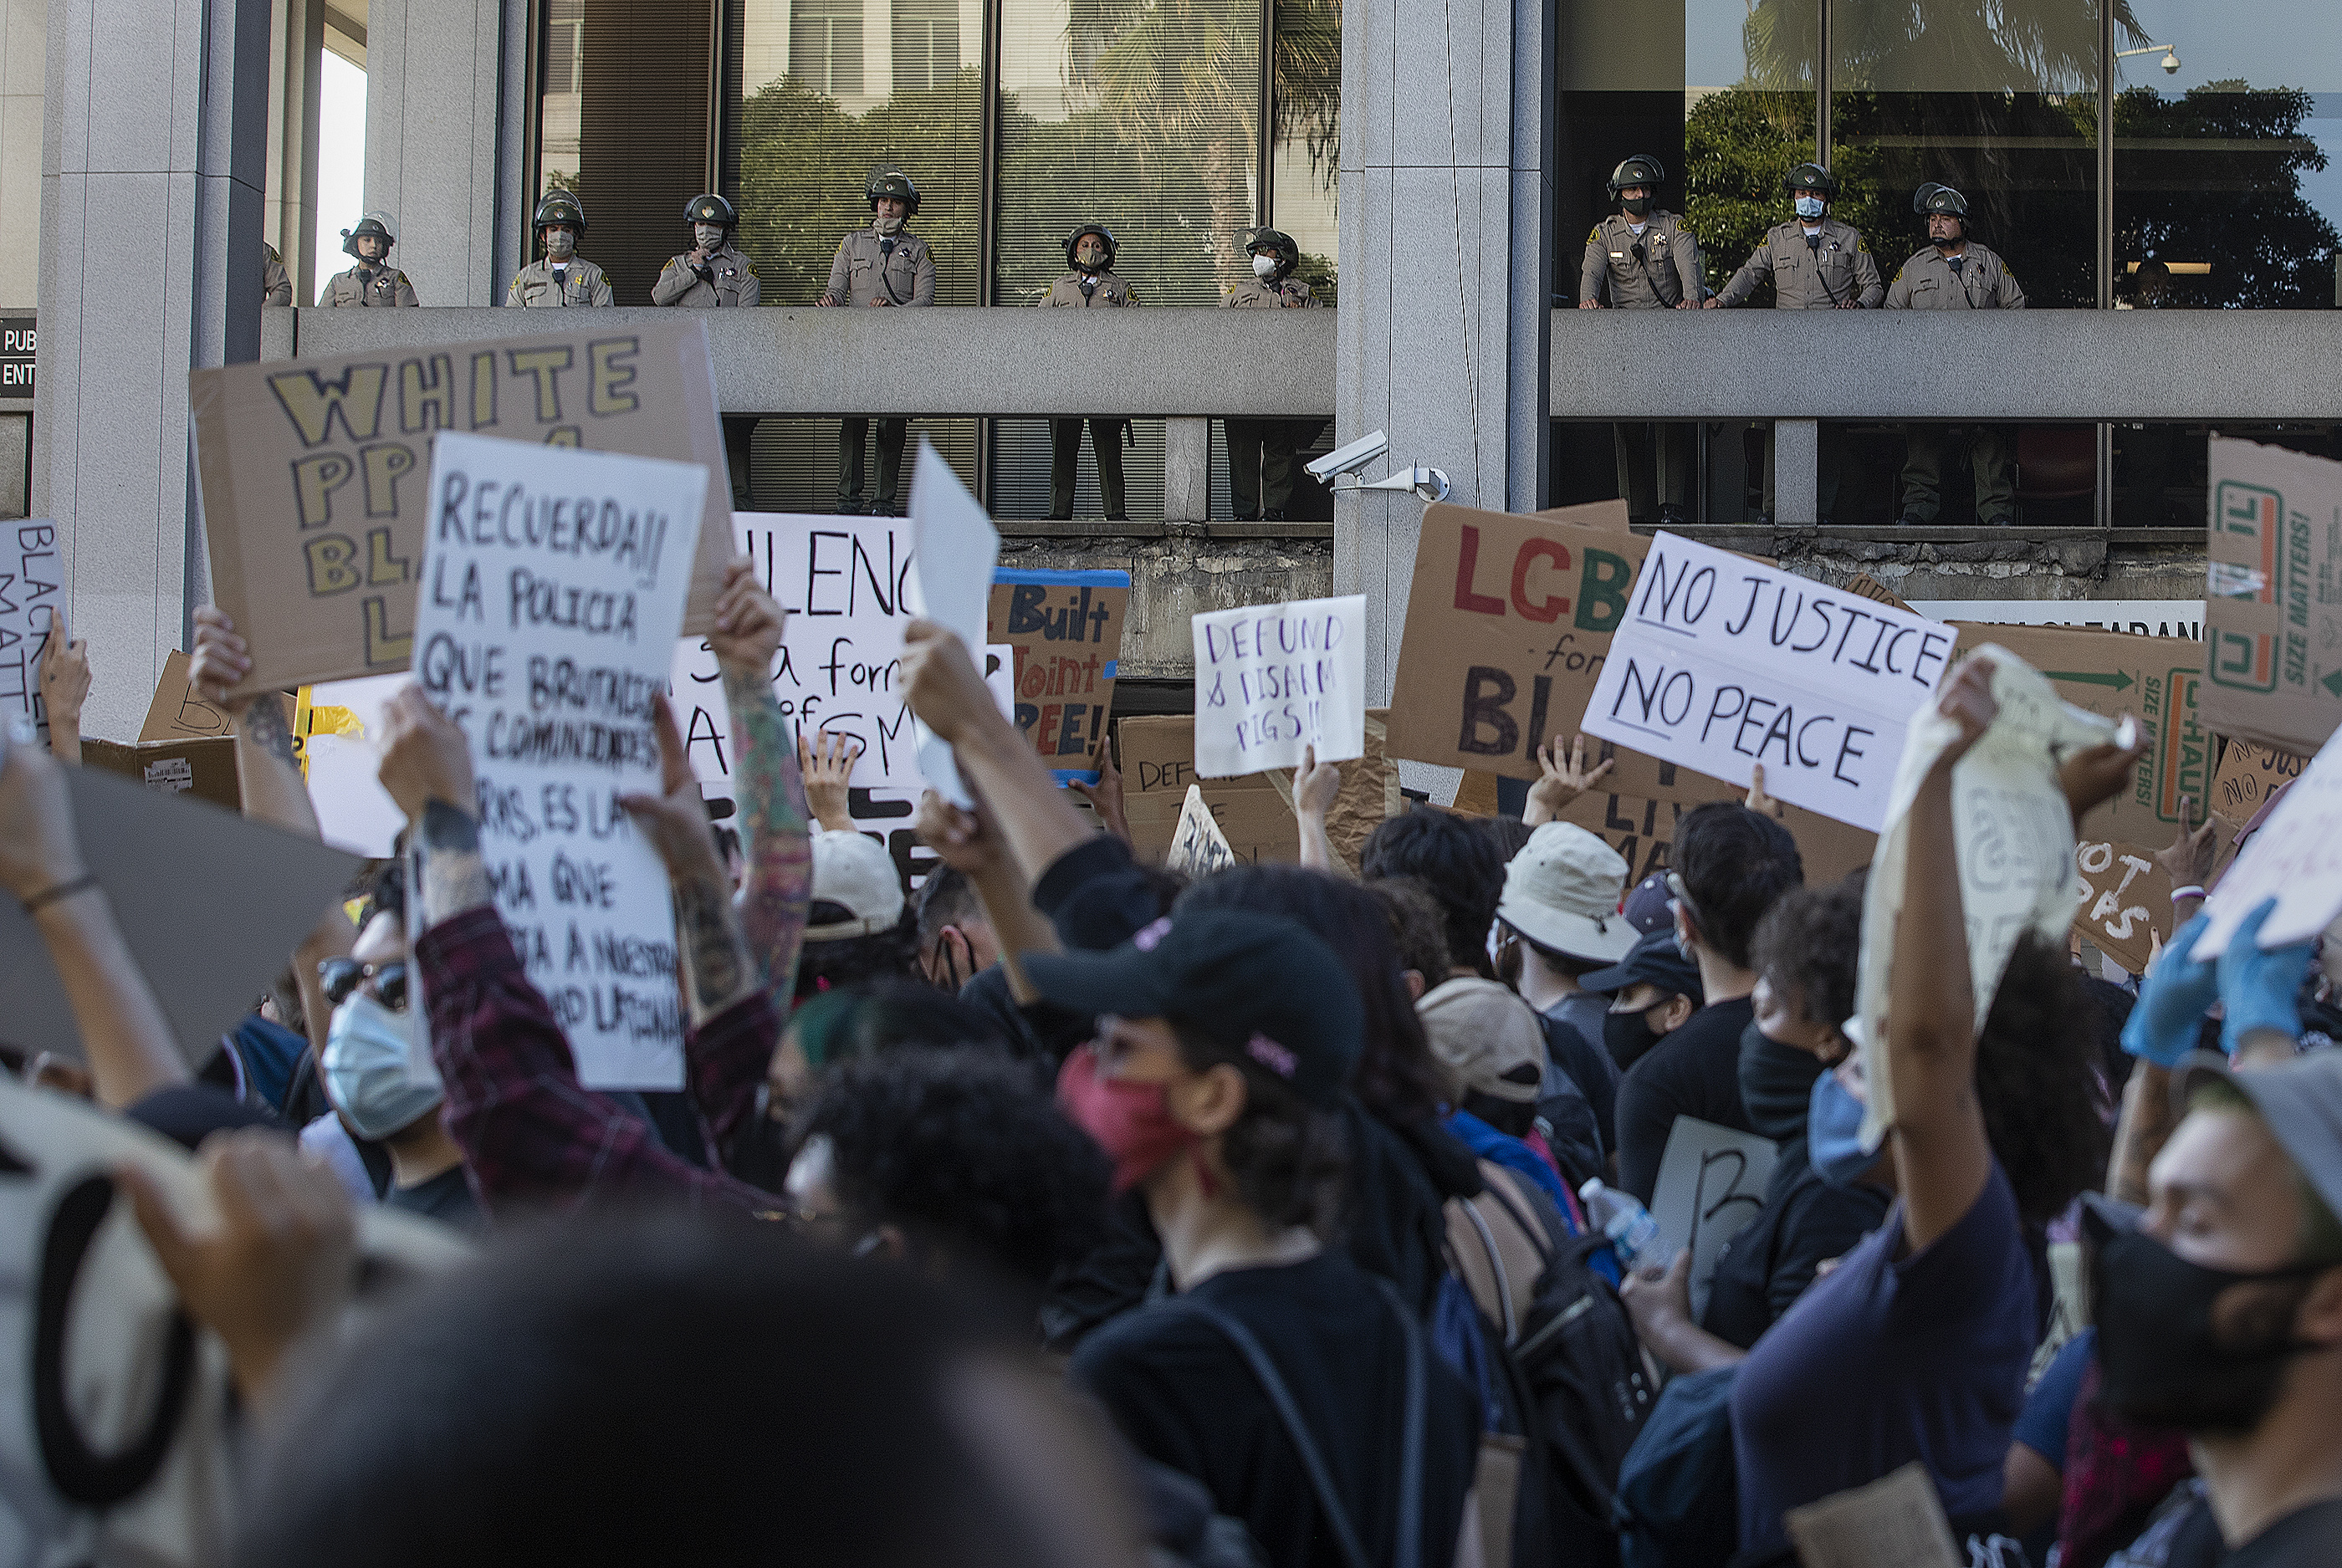 protest in downtown Los Angeles seeking justice for George Floyd